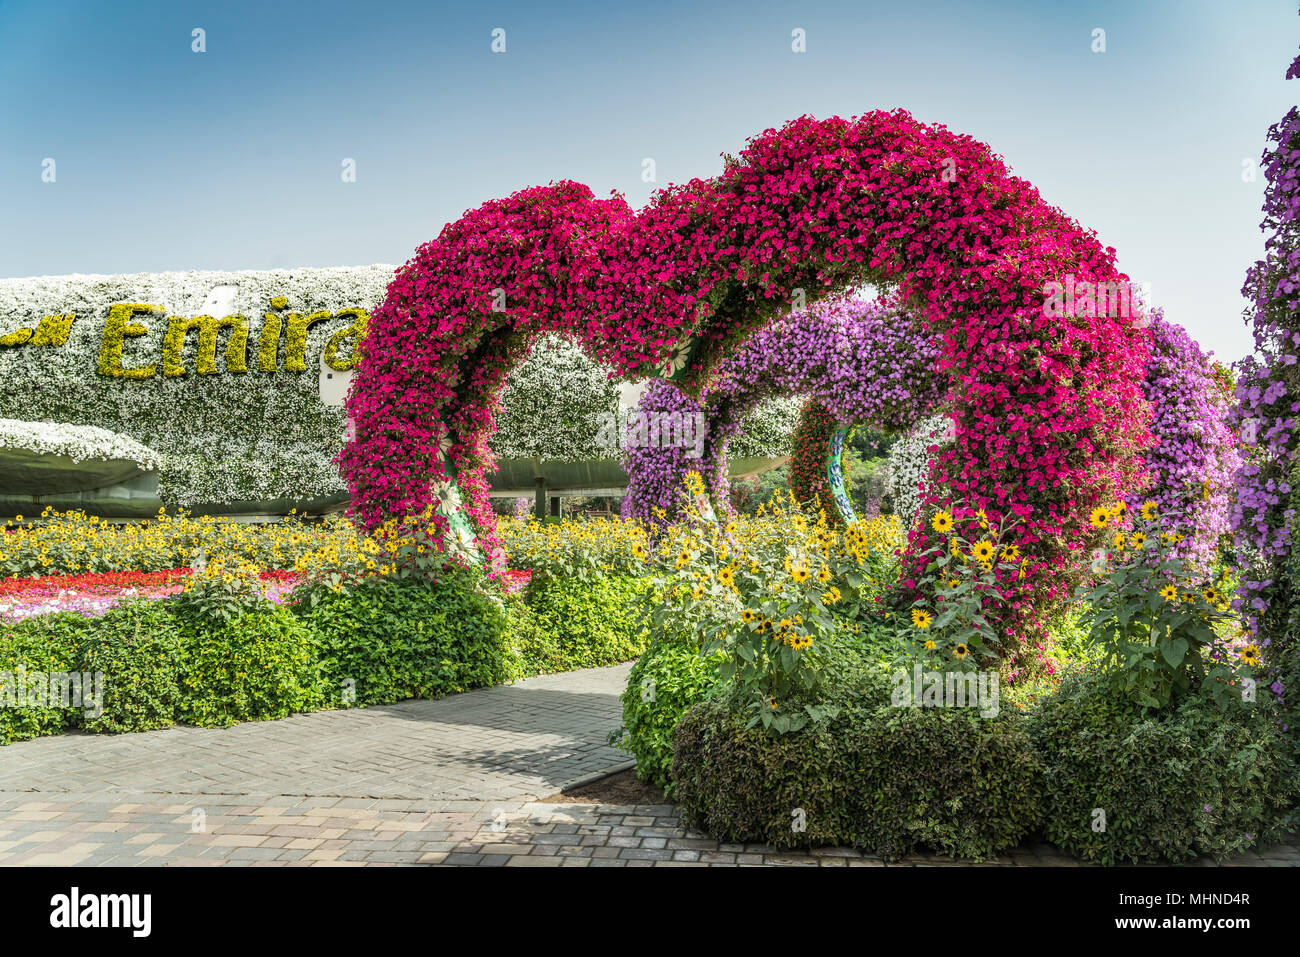 Heart shaped garden stock photos & heart shaped garden stock images